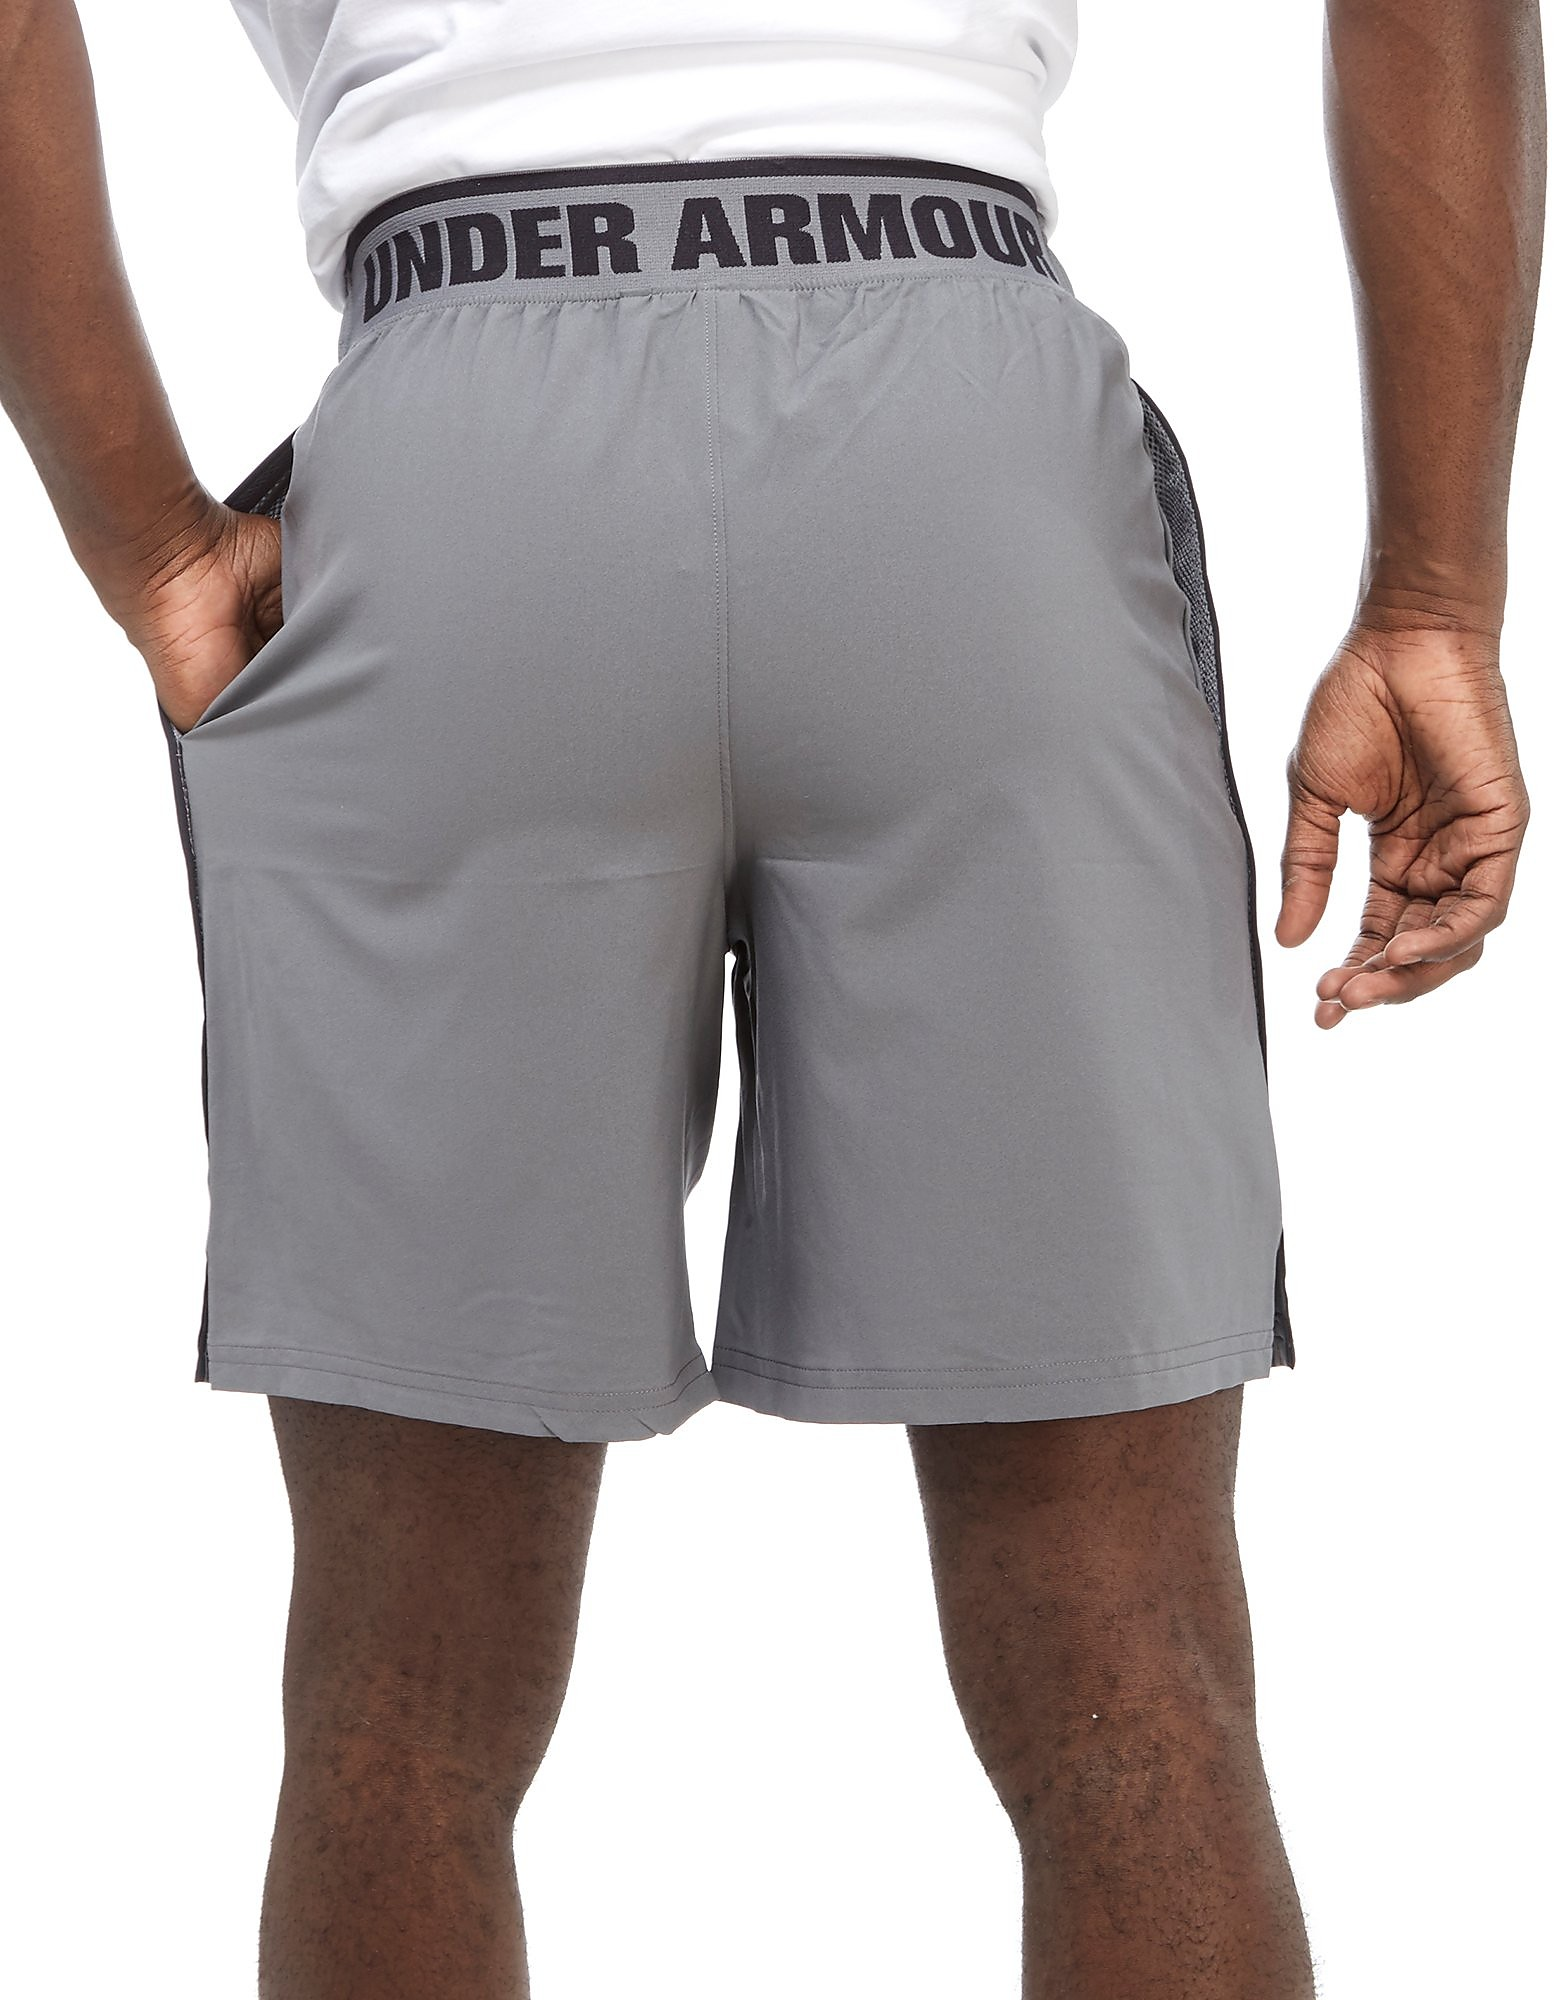 Under Armour Mirage 8 tums shorts